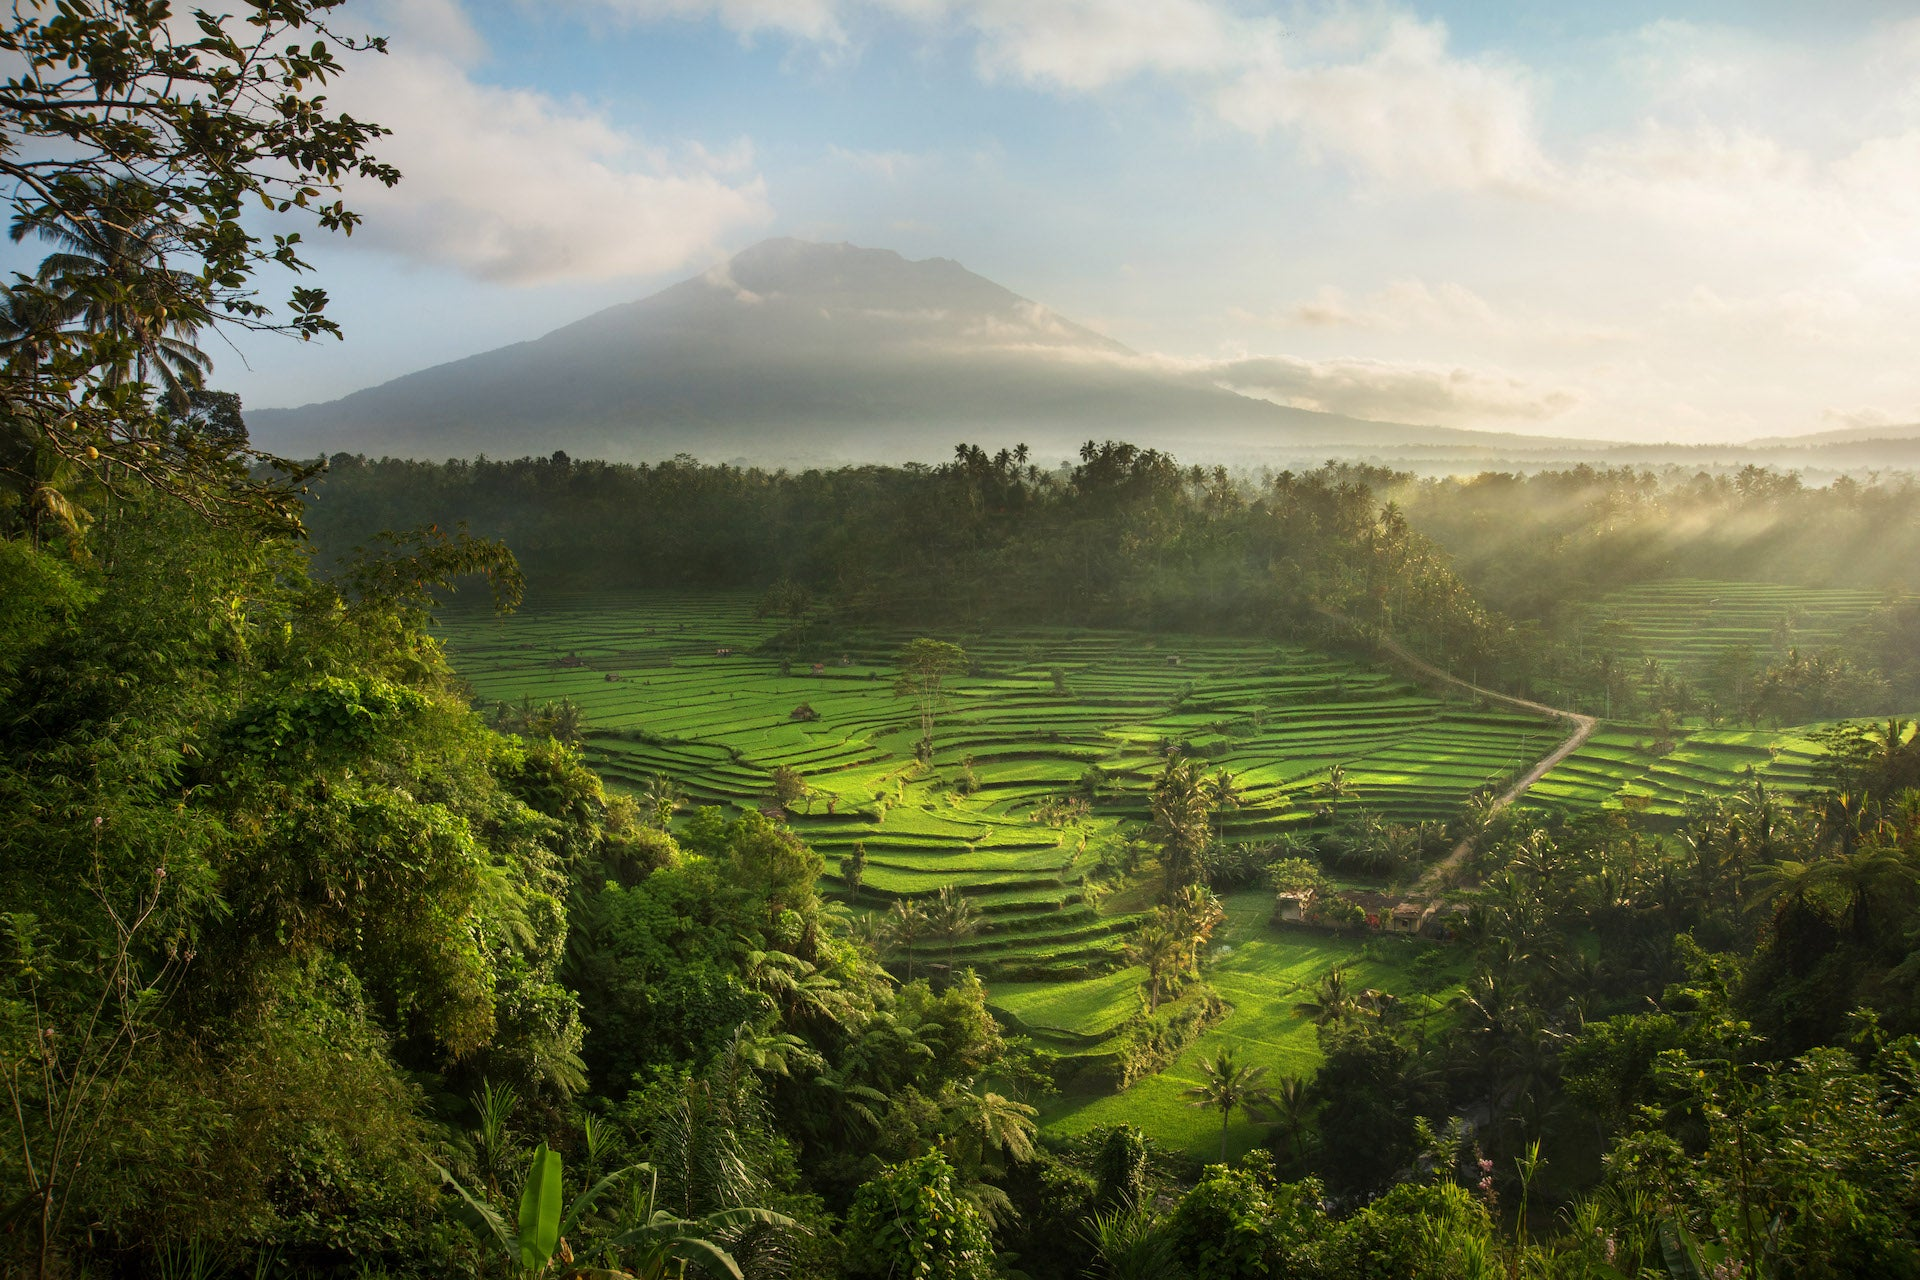 A view over the sacerd Mahagiri rice terraces, a small portion of the 1,000-year-old agrarian system known as the subak, which is unique to the island of Bali. Photo © David Lazar; from the book Lo-TEK, courtesy of Julia Watson